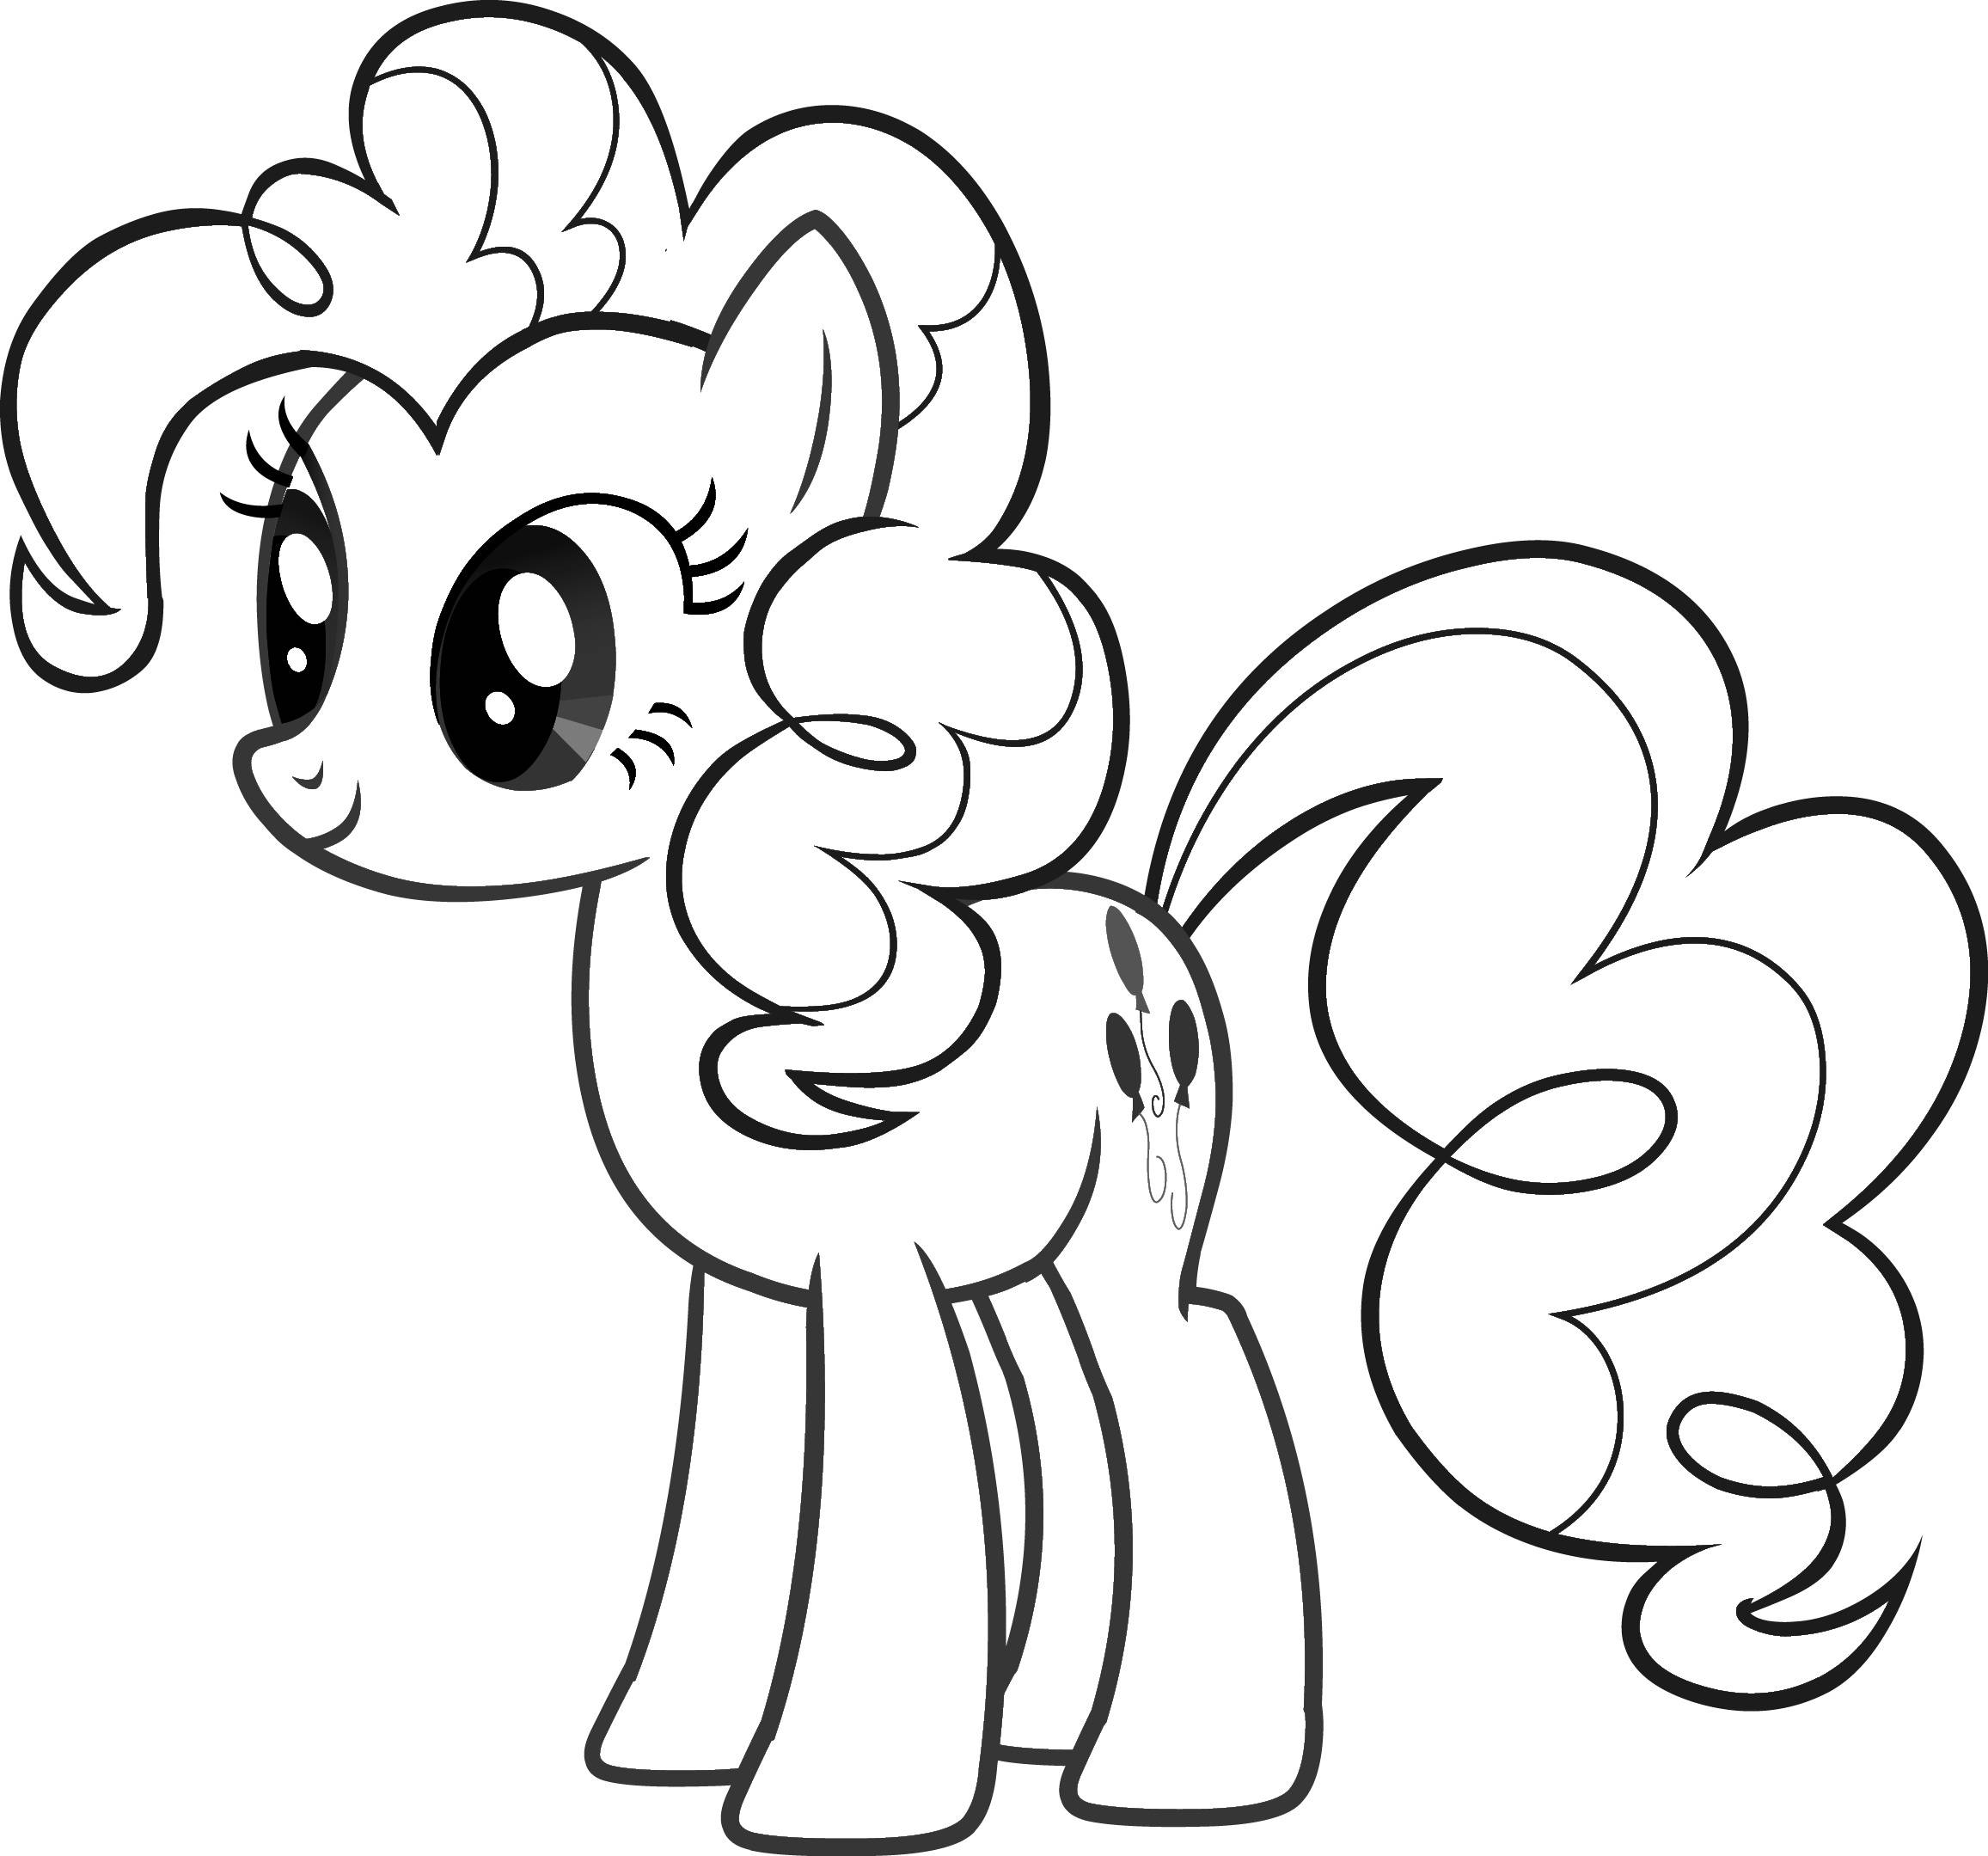 Candid image intended for my little pony coloring pages printable